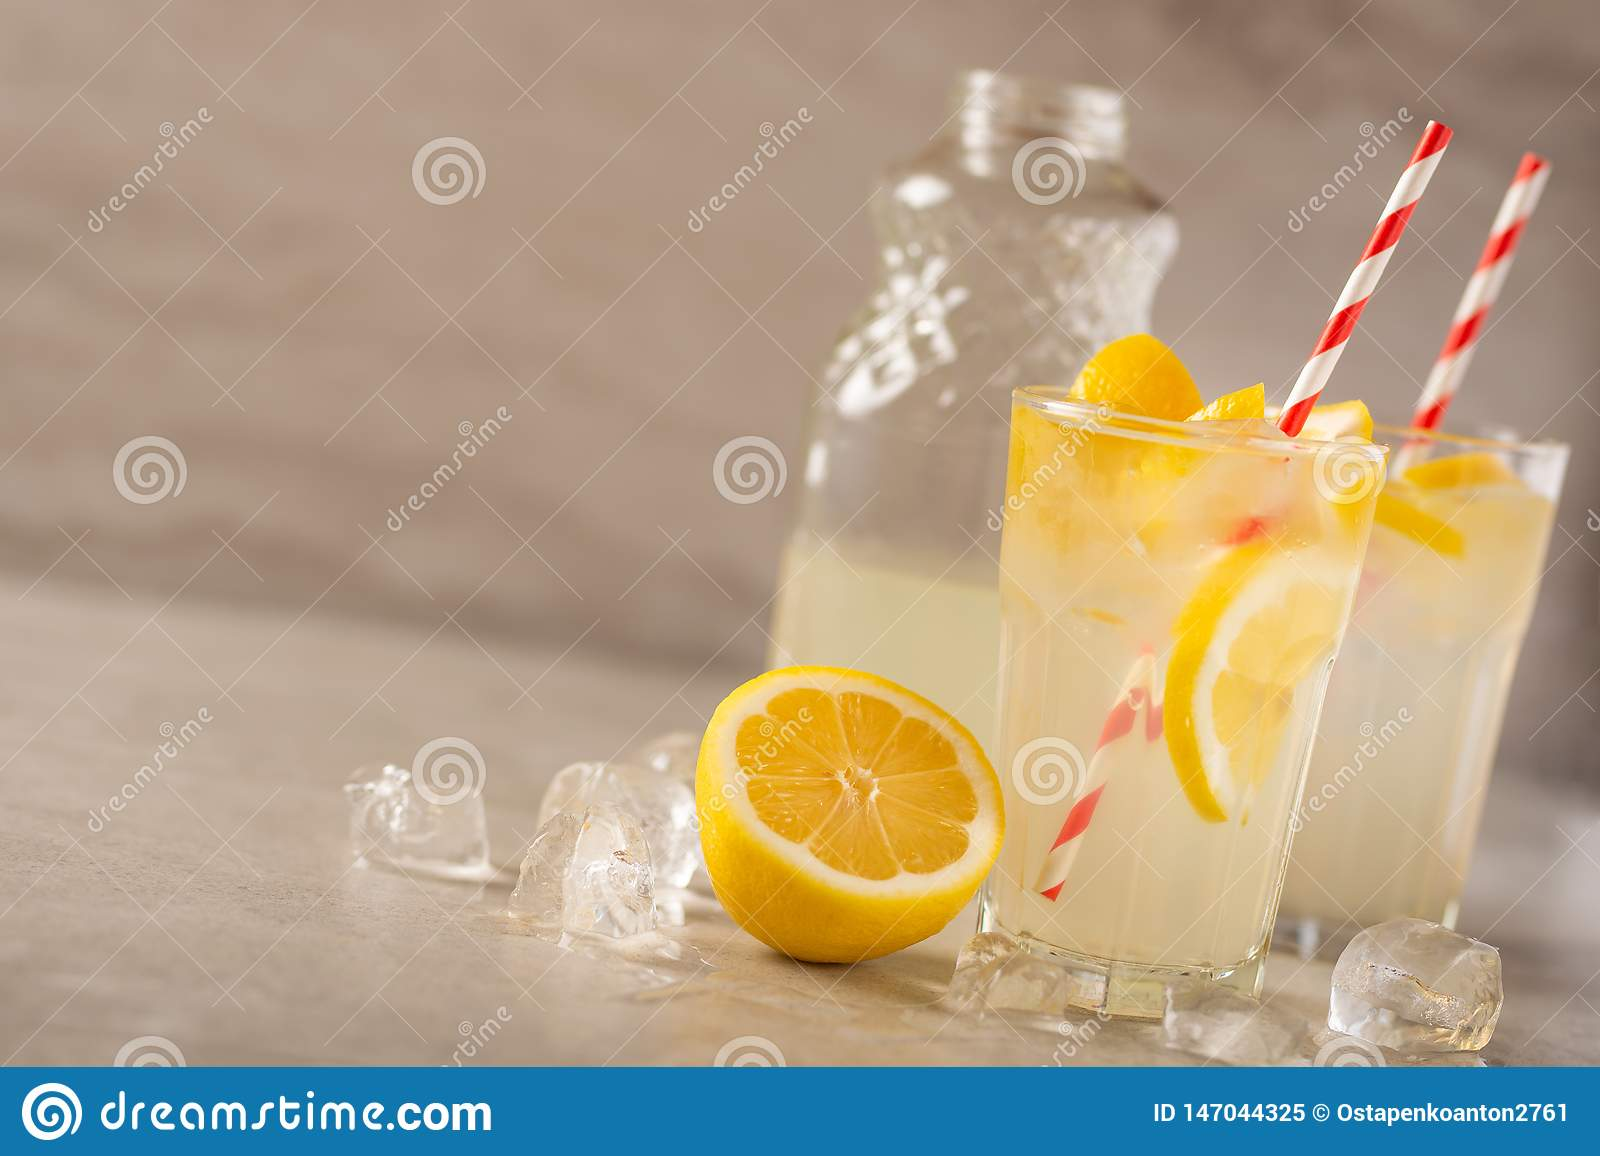 Two glasses of lemonade with lemons and lime and straw, a bottle with a cool drink and summer mood, with ice, freshness in hot